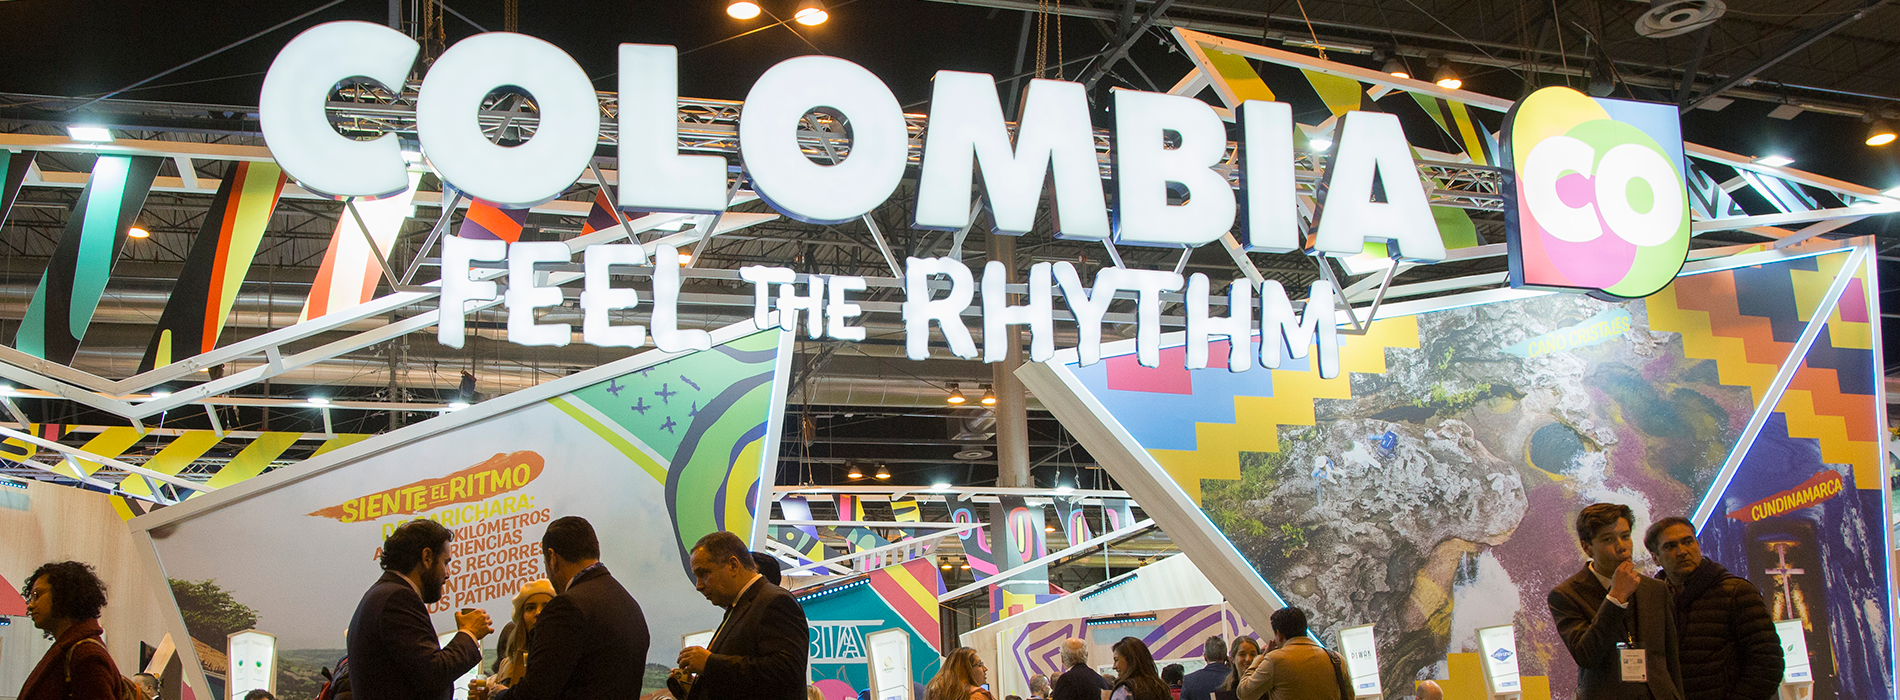 The UK will feel Colombia's rhythm at WTM